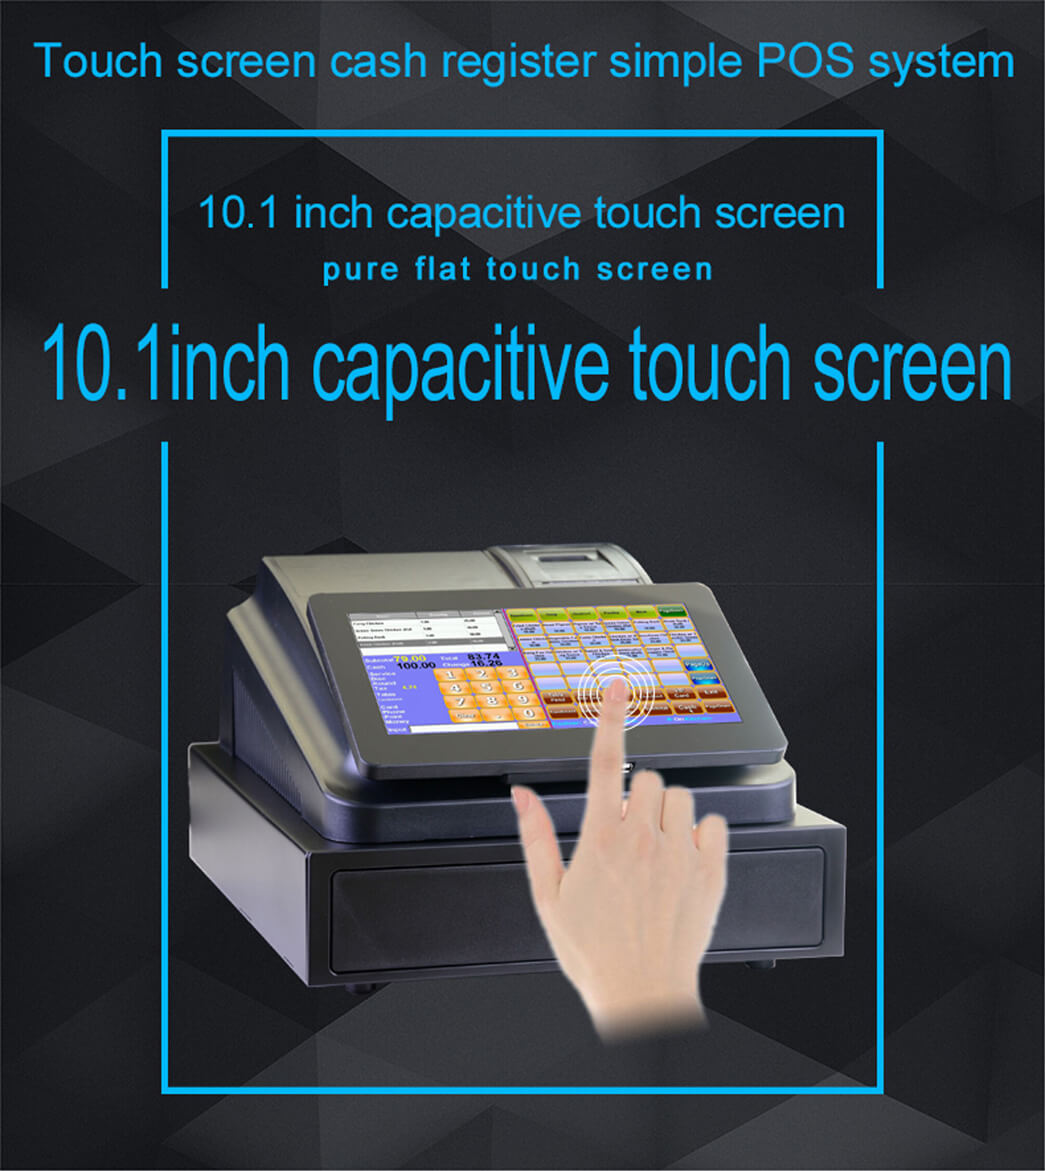 NOBLY Technology-Pro 101 Inch Simple Touch Screen Cash Register Simple POS-1